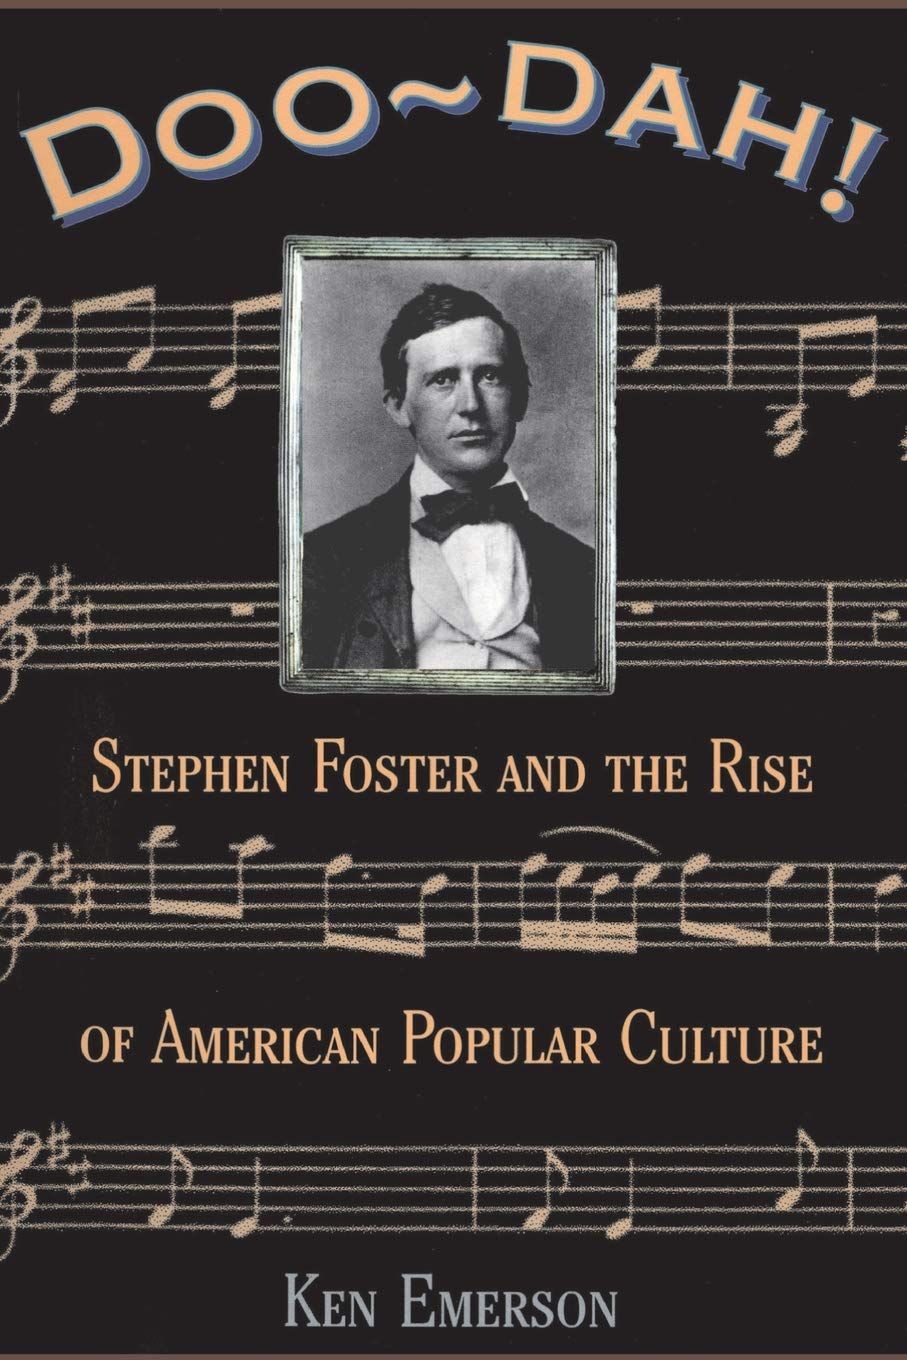 Stephen Foster And The Rise Of American Popular Culture